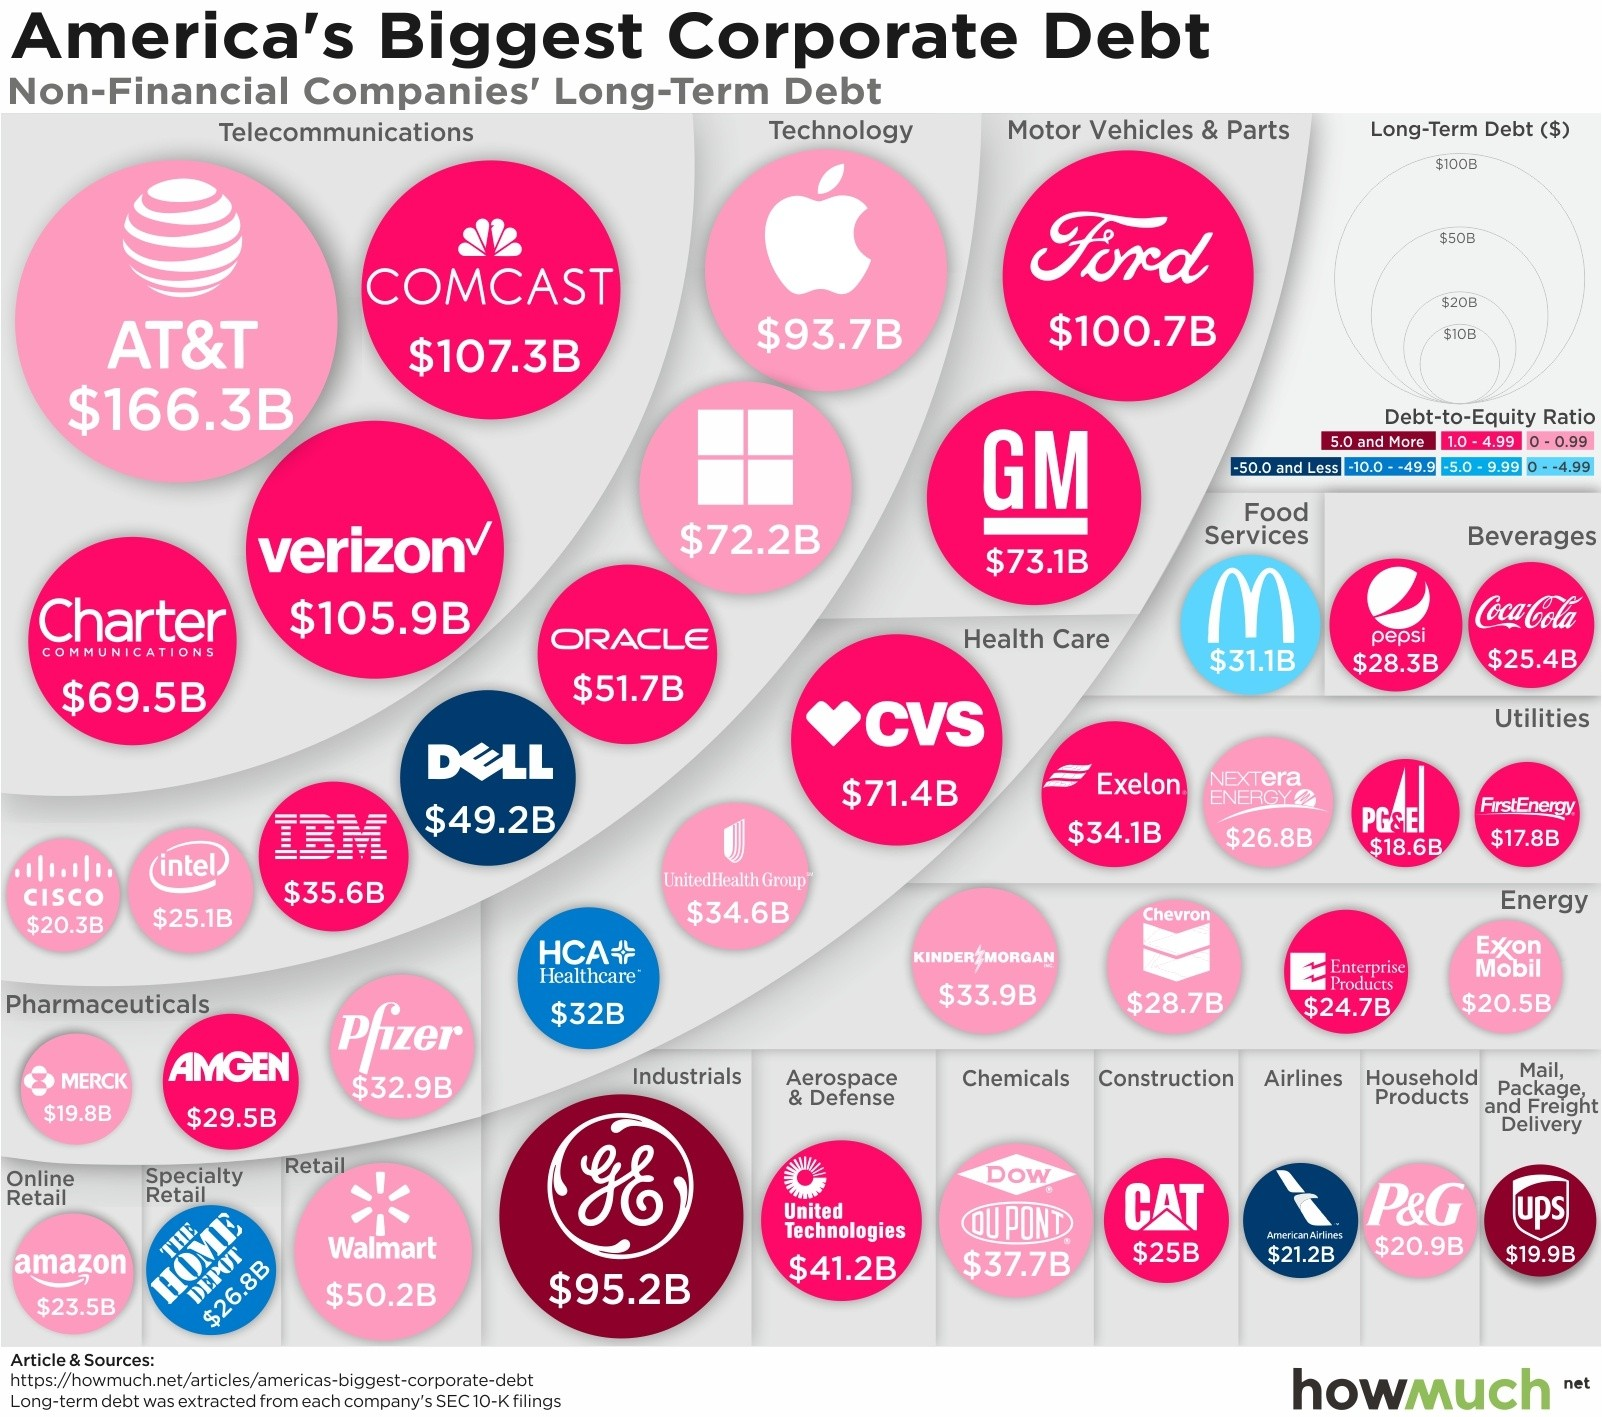 Corporate debt by company